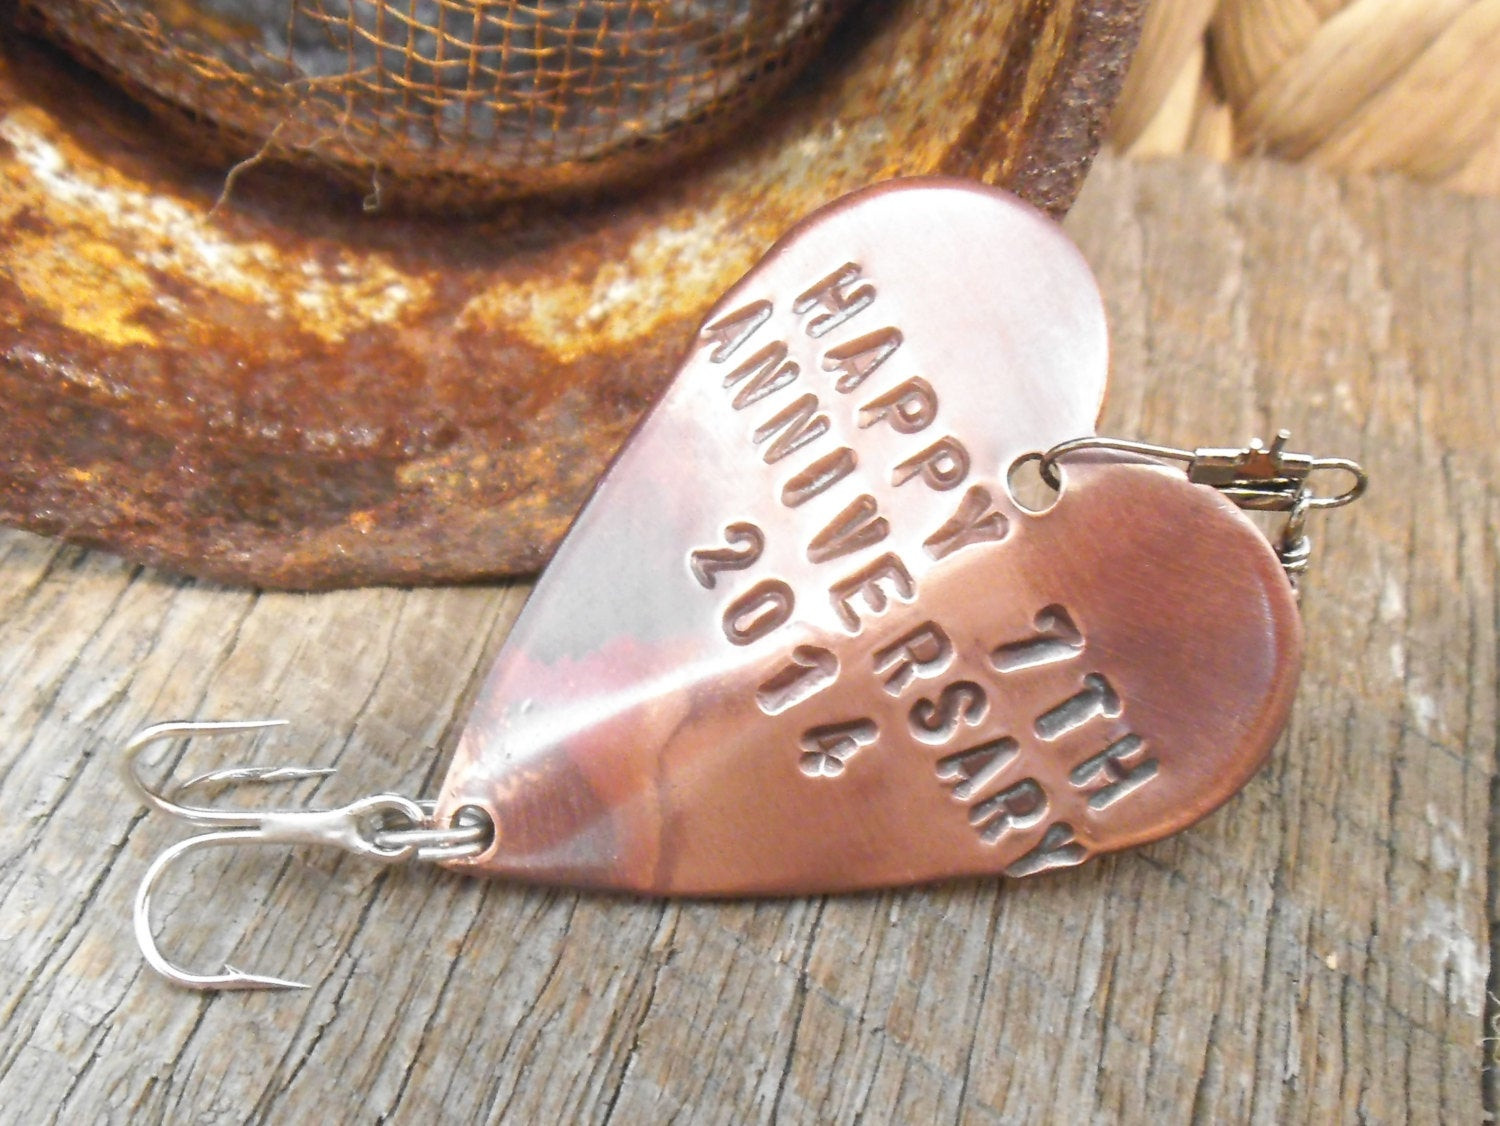 7 Year Anniversary Copper Gift Ideas  Seventh Anniversary 7th Wedding Anniversary Lucky 7 Copper